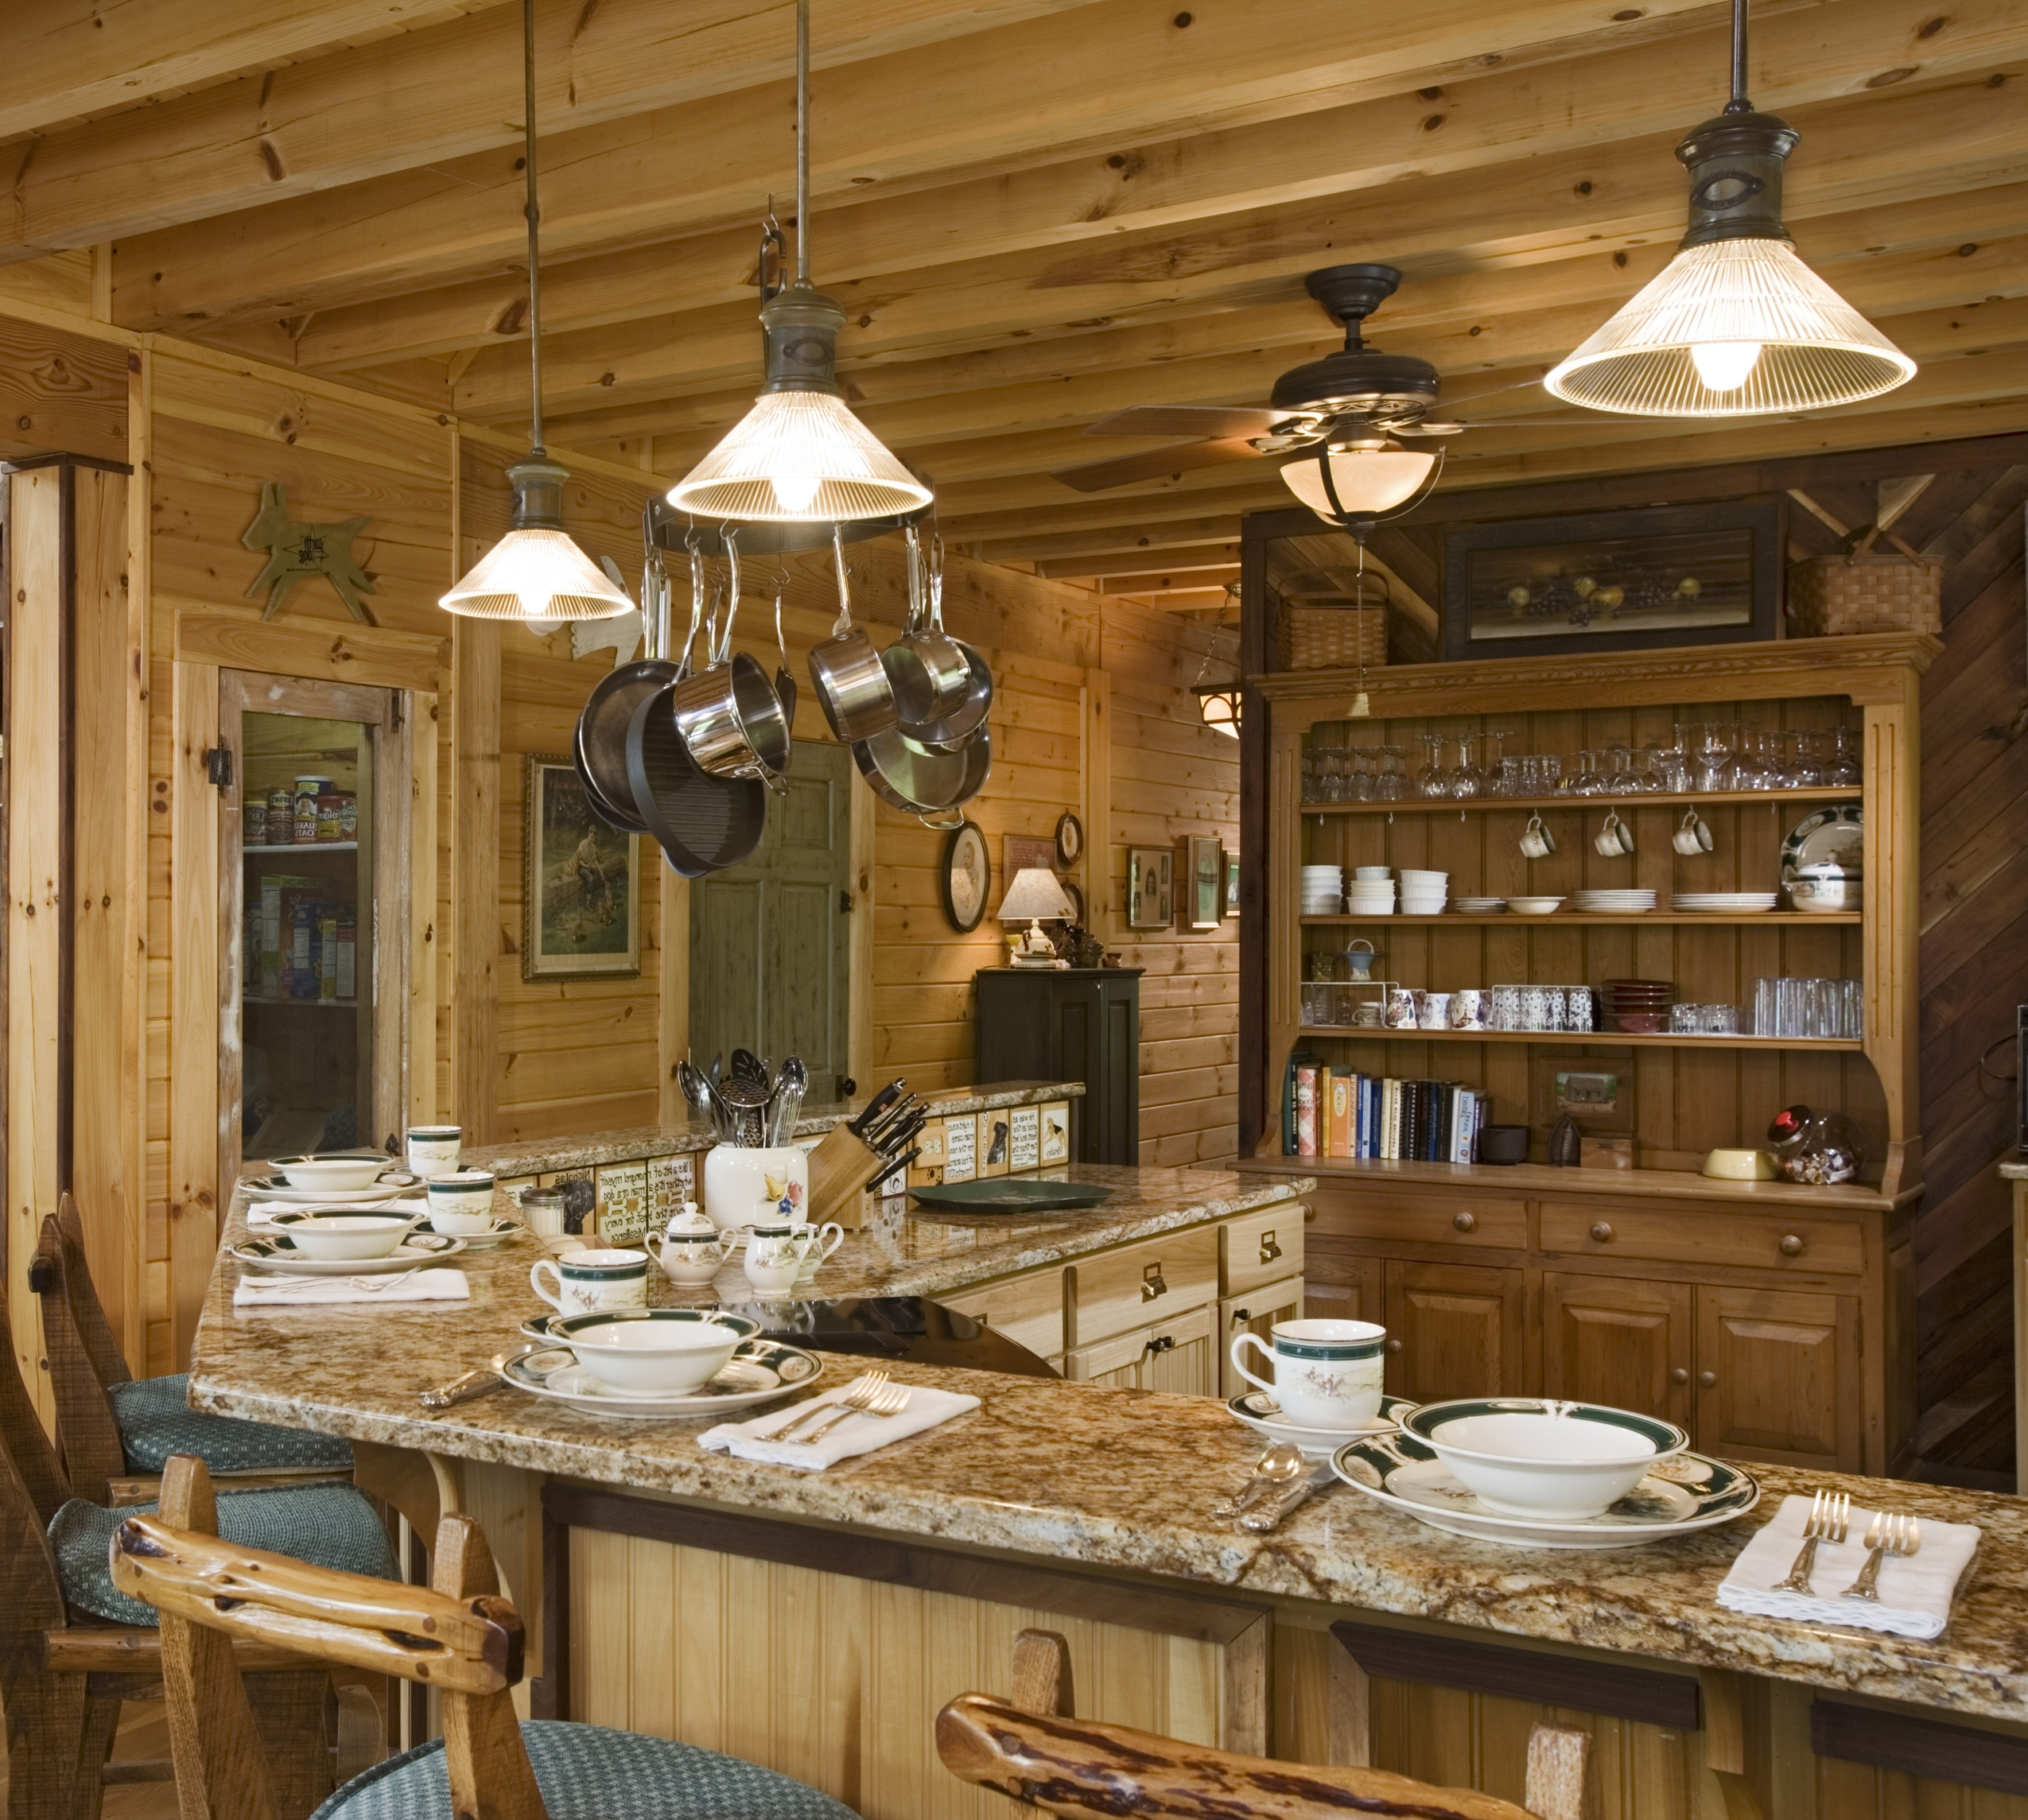 Trendy Chandeliers Design : Awesome Rustic Industrial Chandelier Unique Within Small Rustic Kitchen Chandeliers (View 17 of 20)